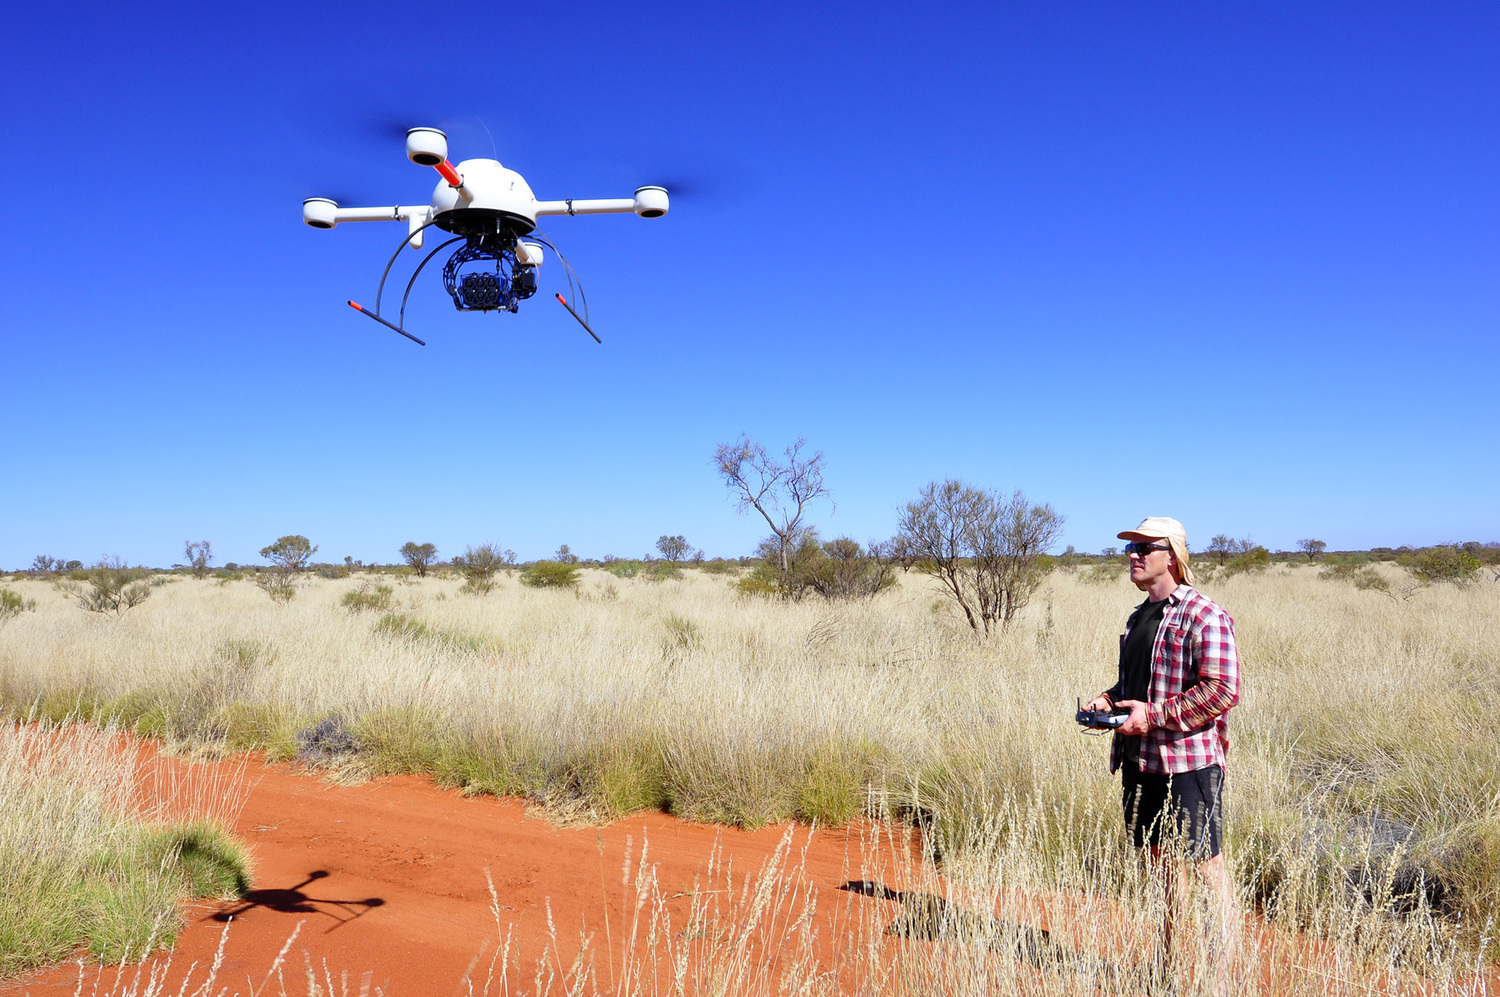 Dr Stephan Getzin from the University of Goettingen flying a Microdrone md4-1000 quadcopter, mounted with a multispectral camera. The multispectral camera was used to map the distribution of grass vitality across the landscape.